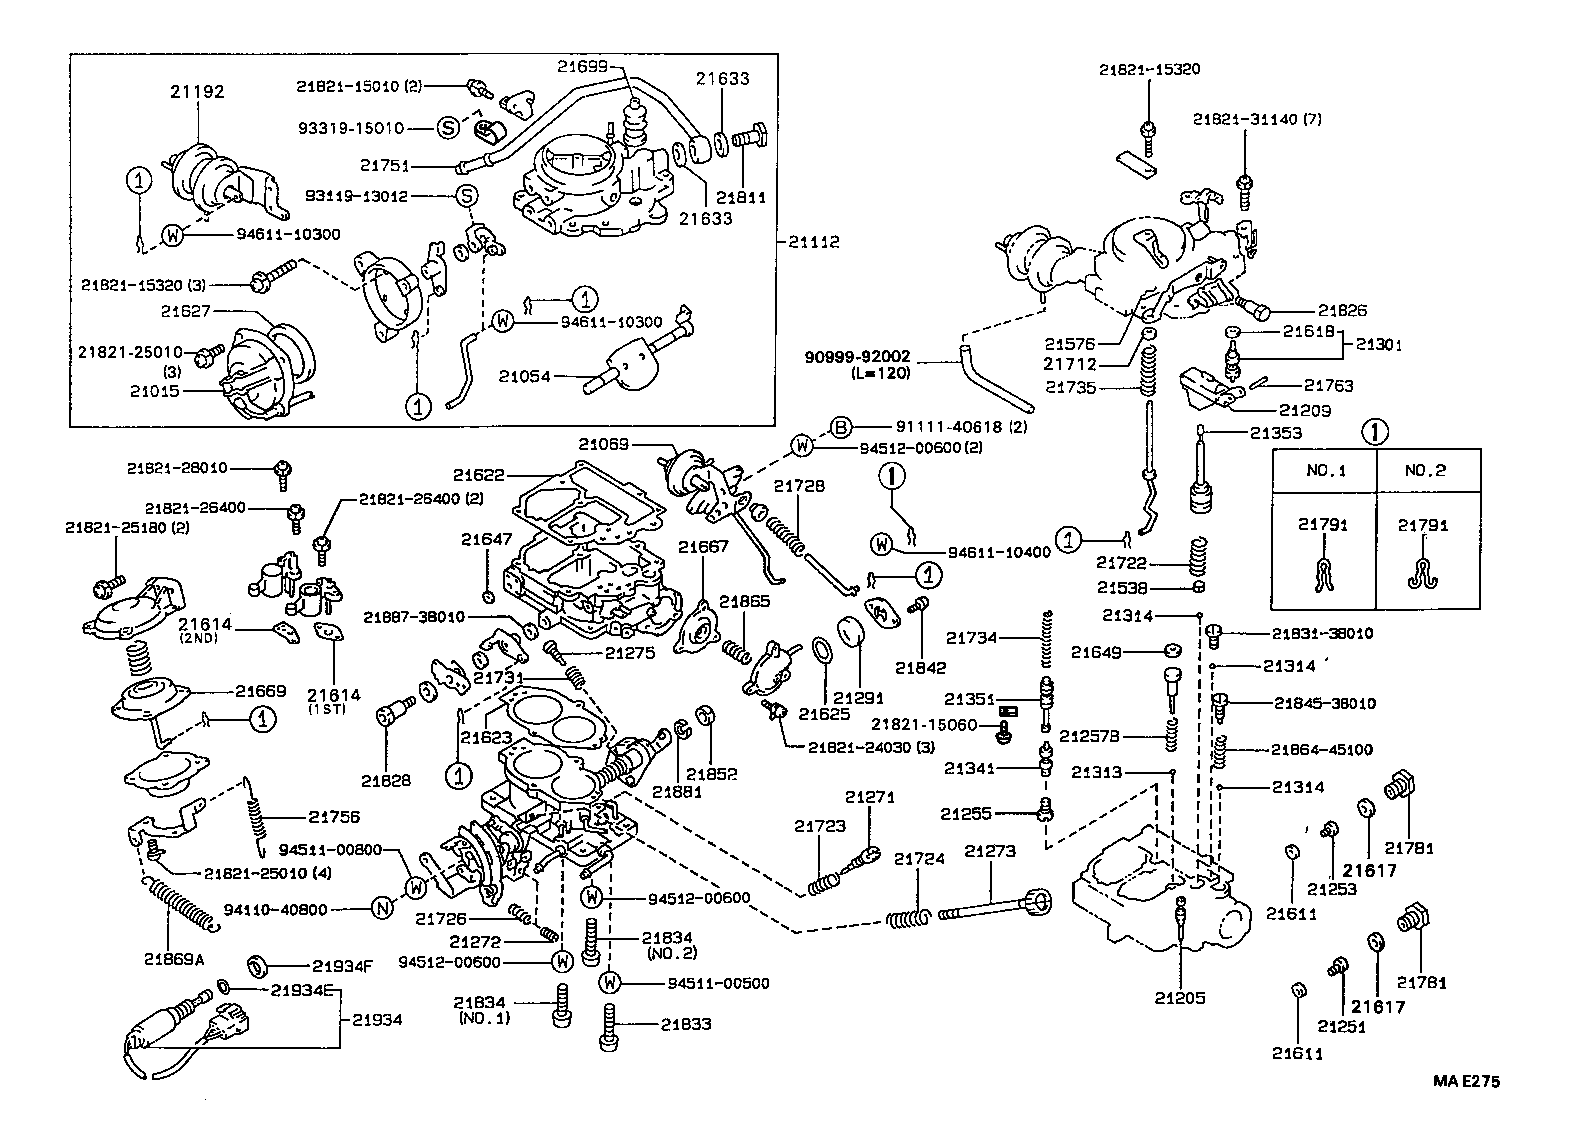 2001 toyota corolla wiring diagram razor e200 electric scooter engine for hyundai sonata 2 4 free